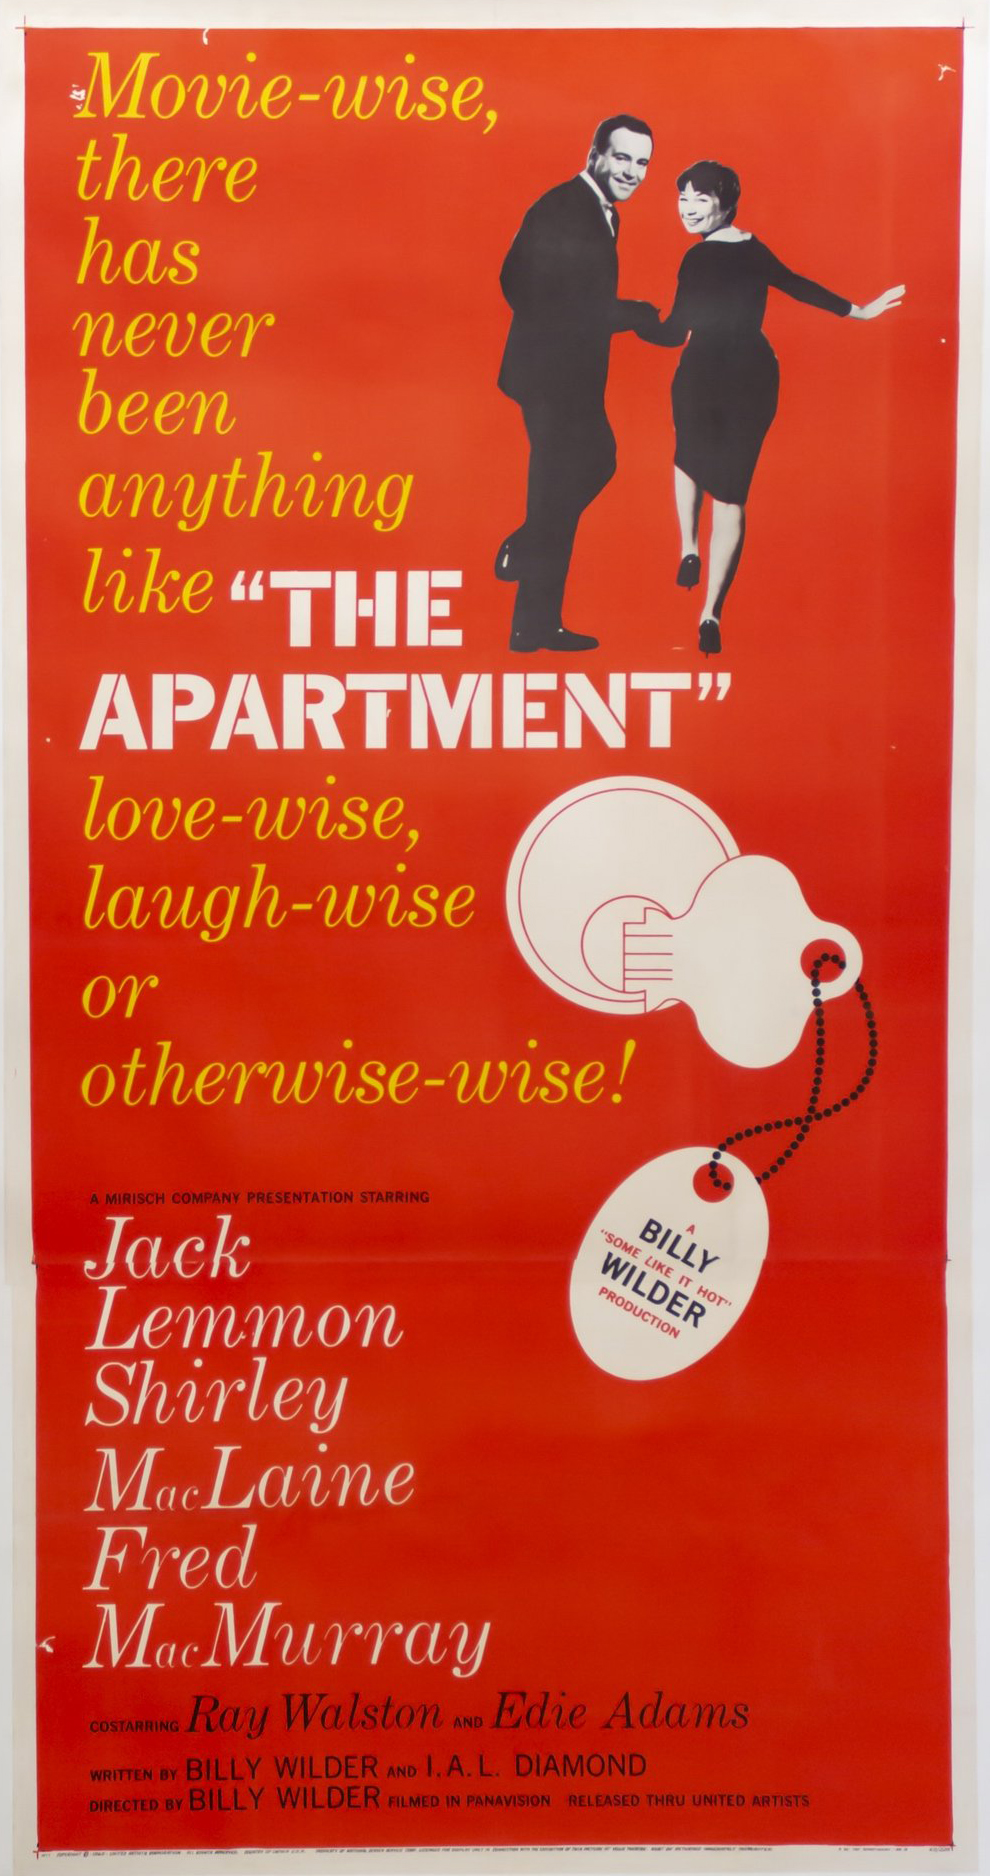 The Apartment, by Billy Wilder.